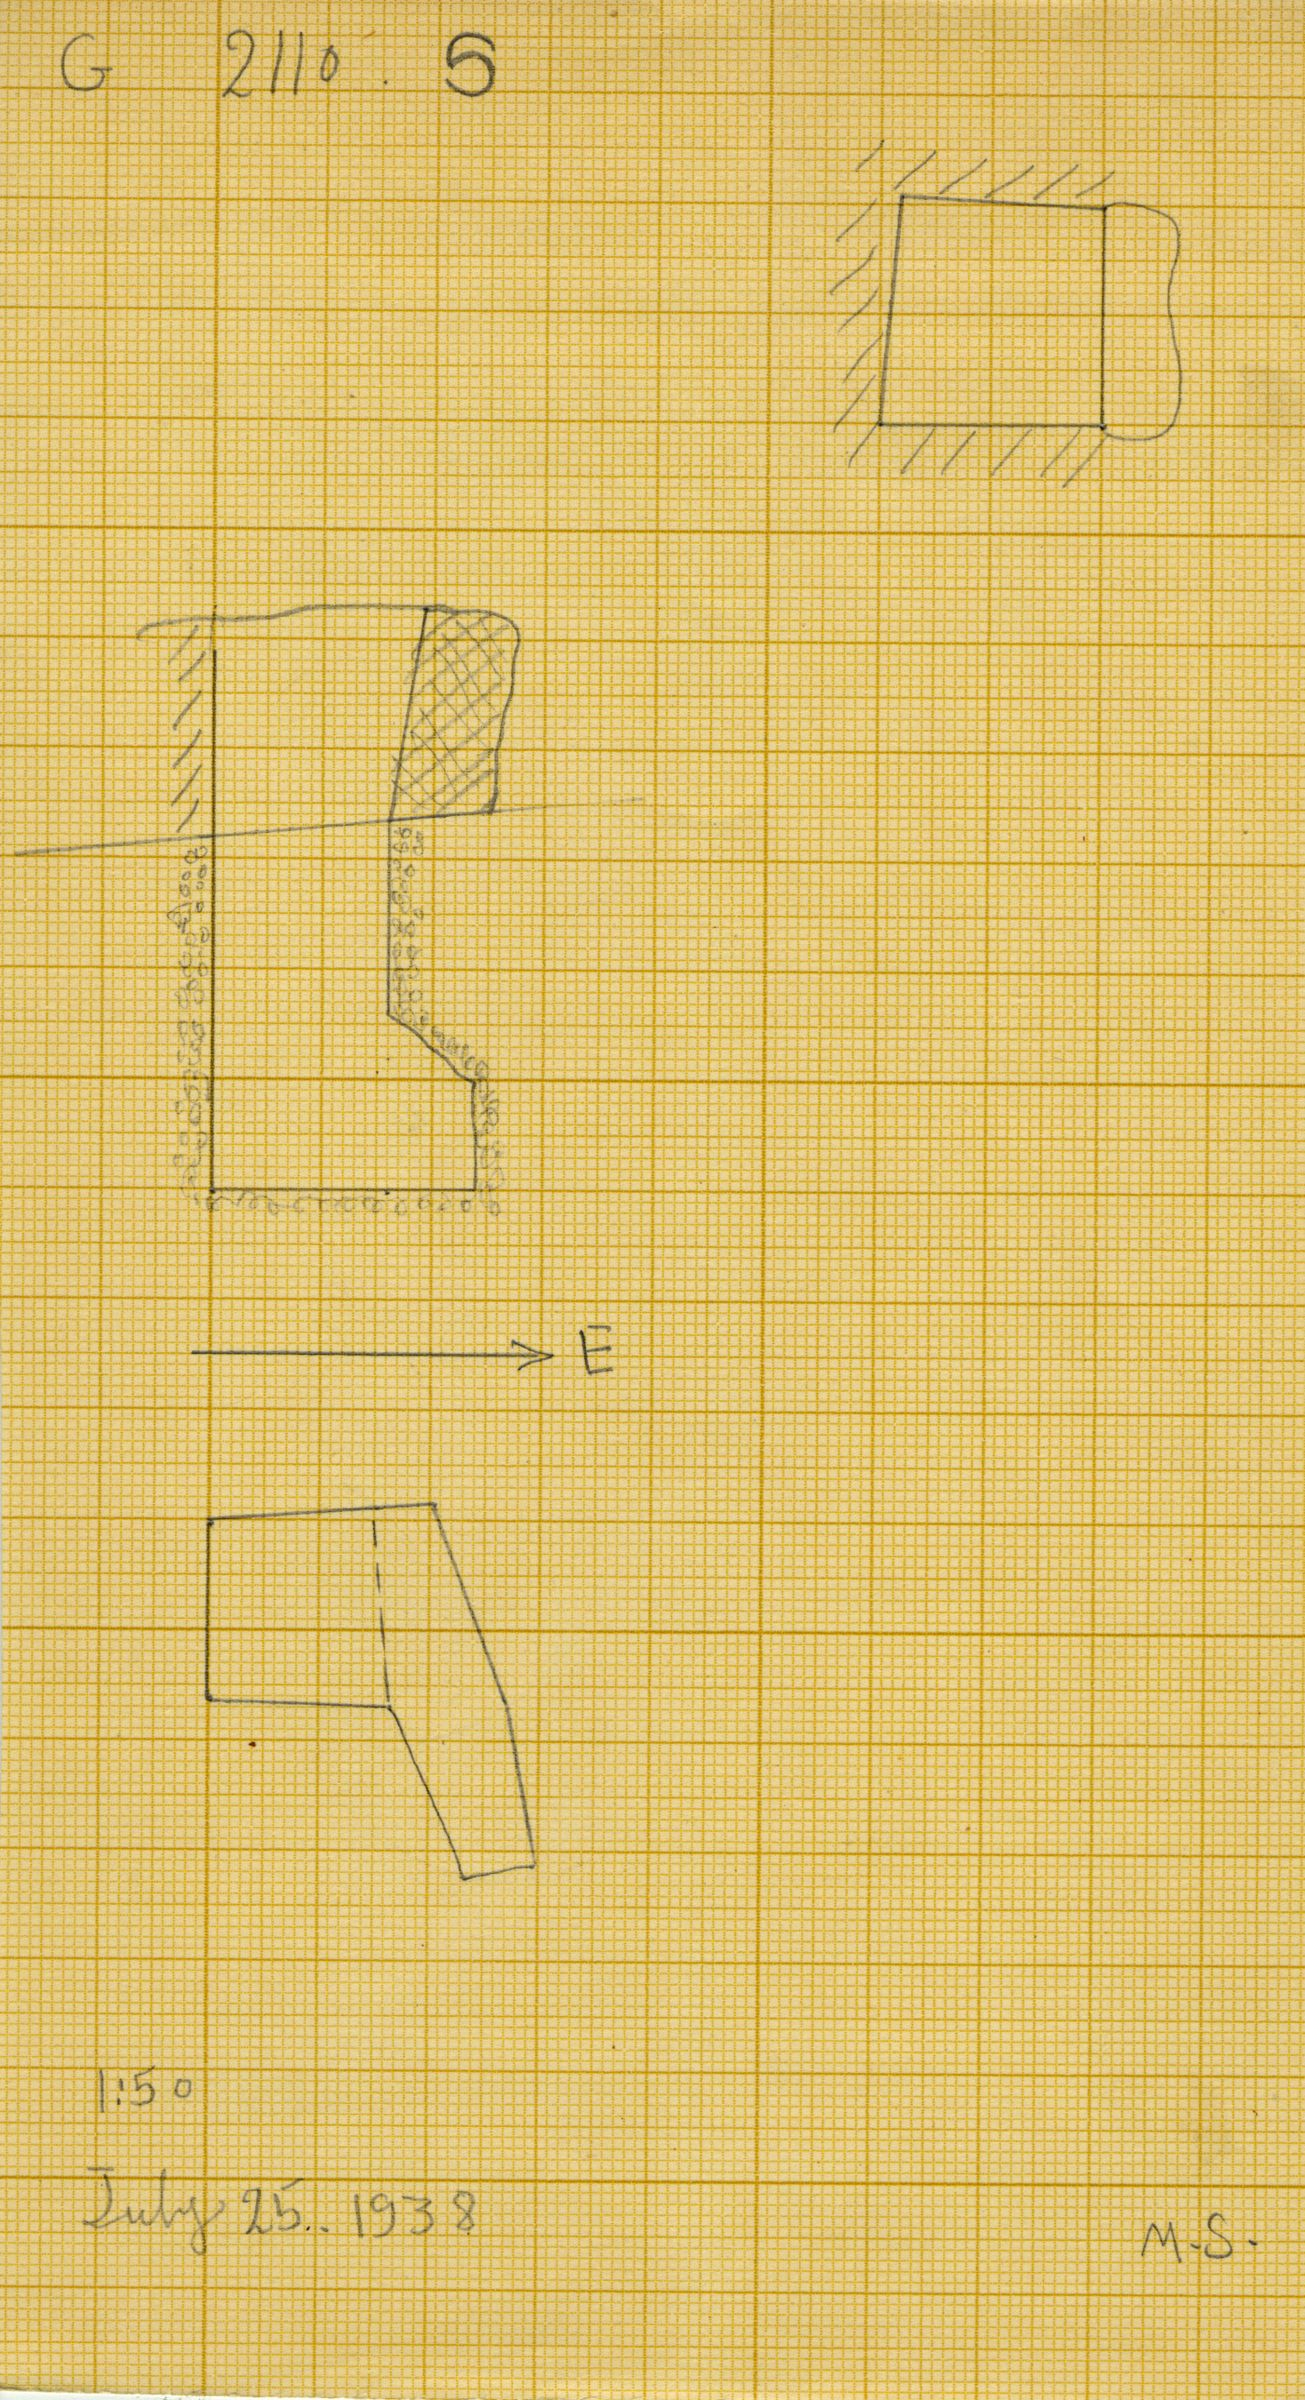 Maps and plans: G 2110, Shaft S